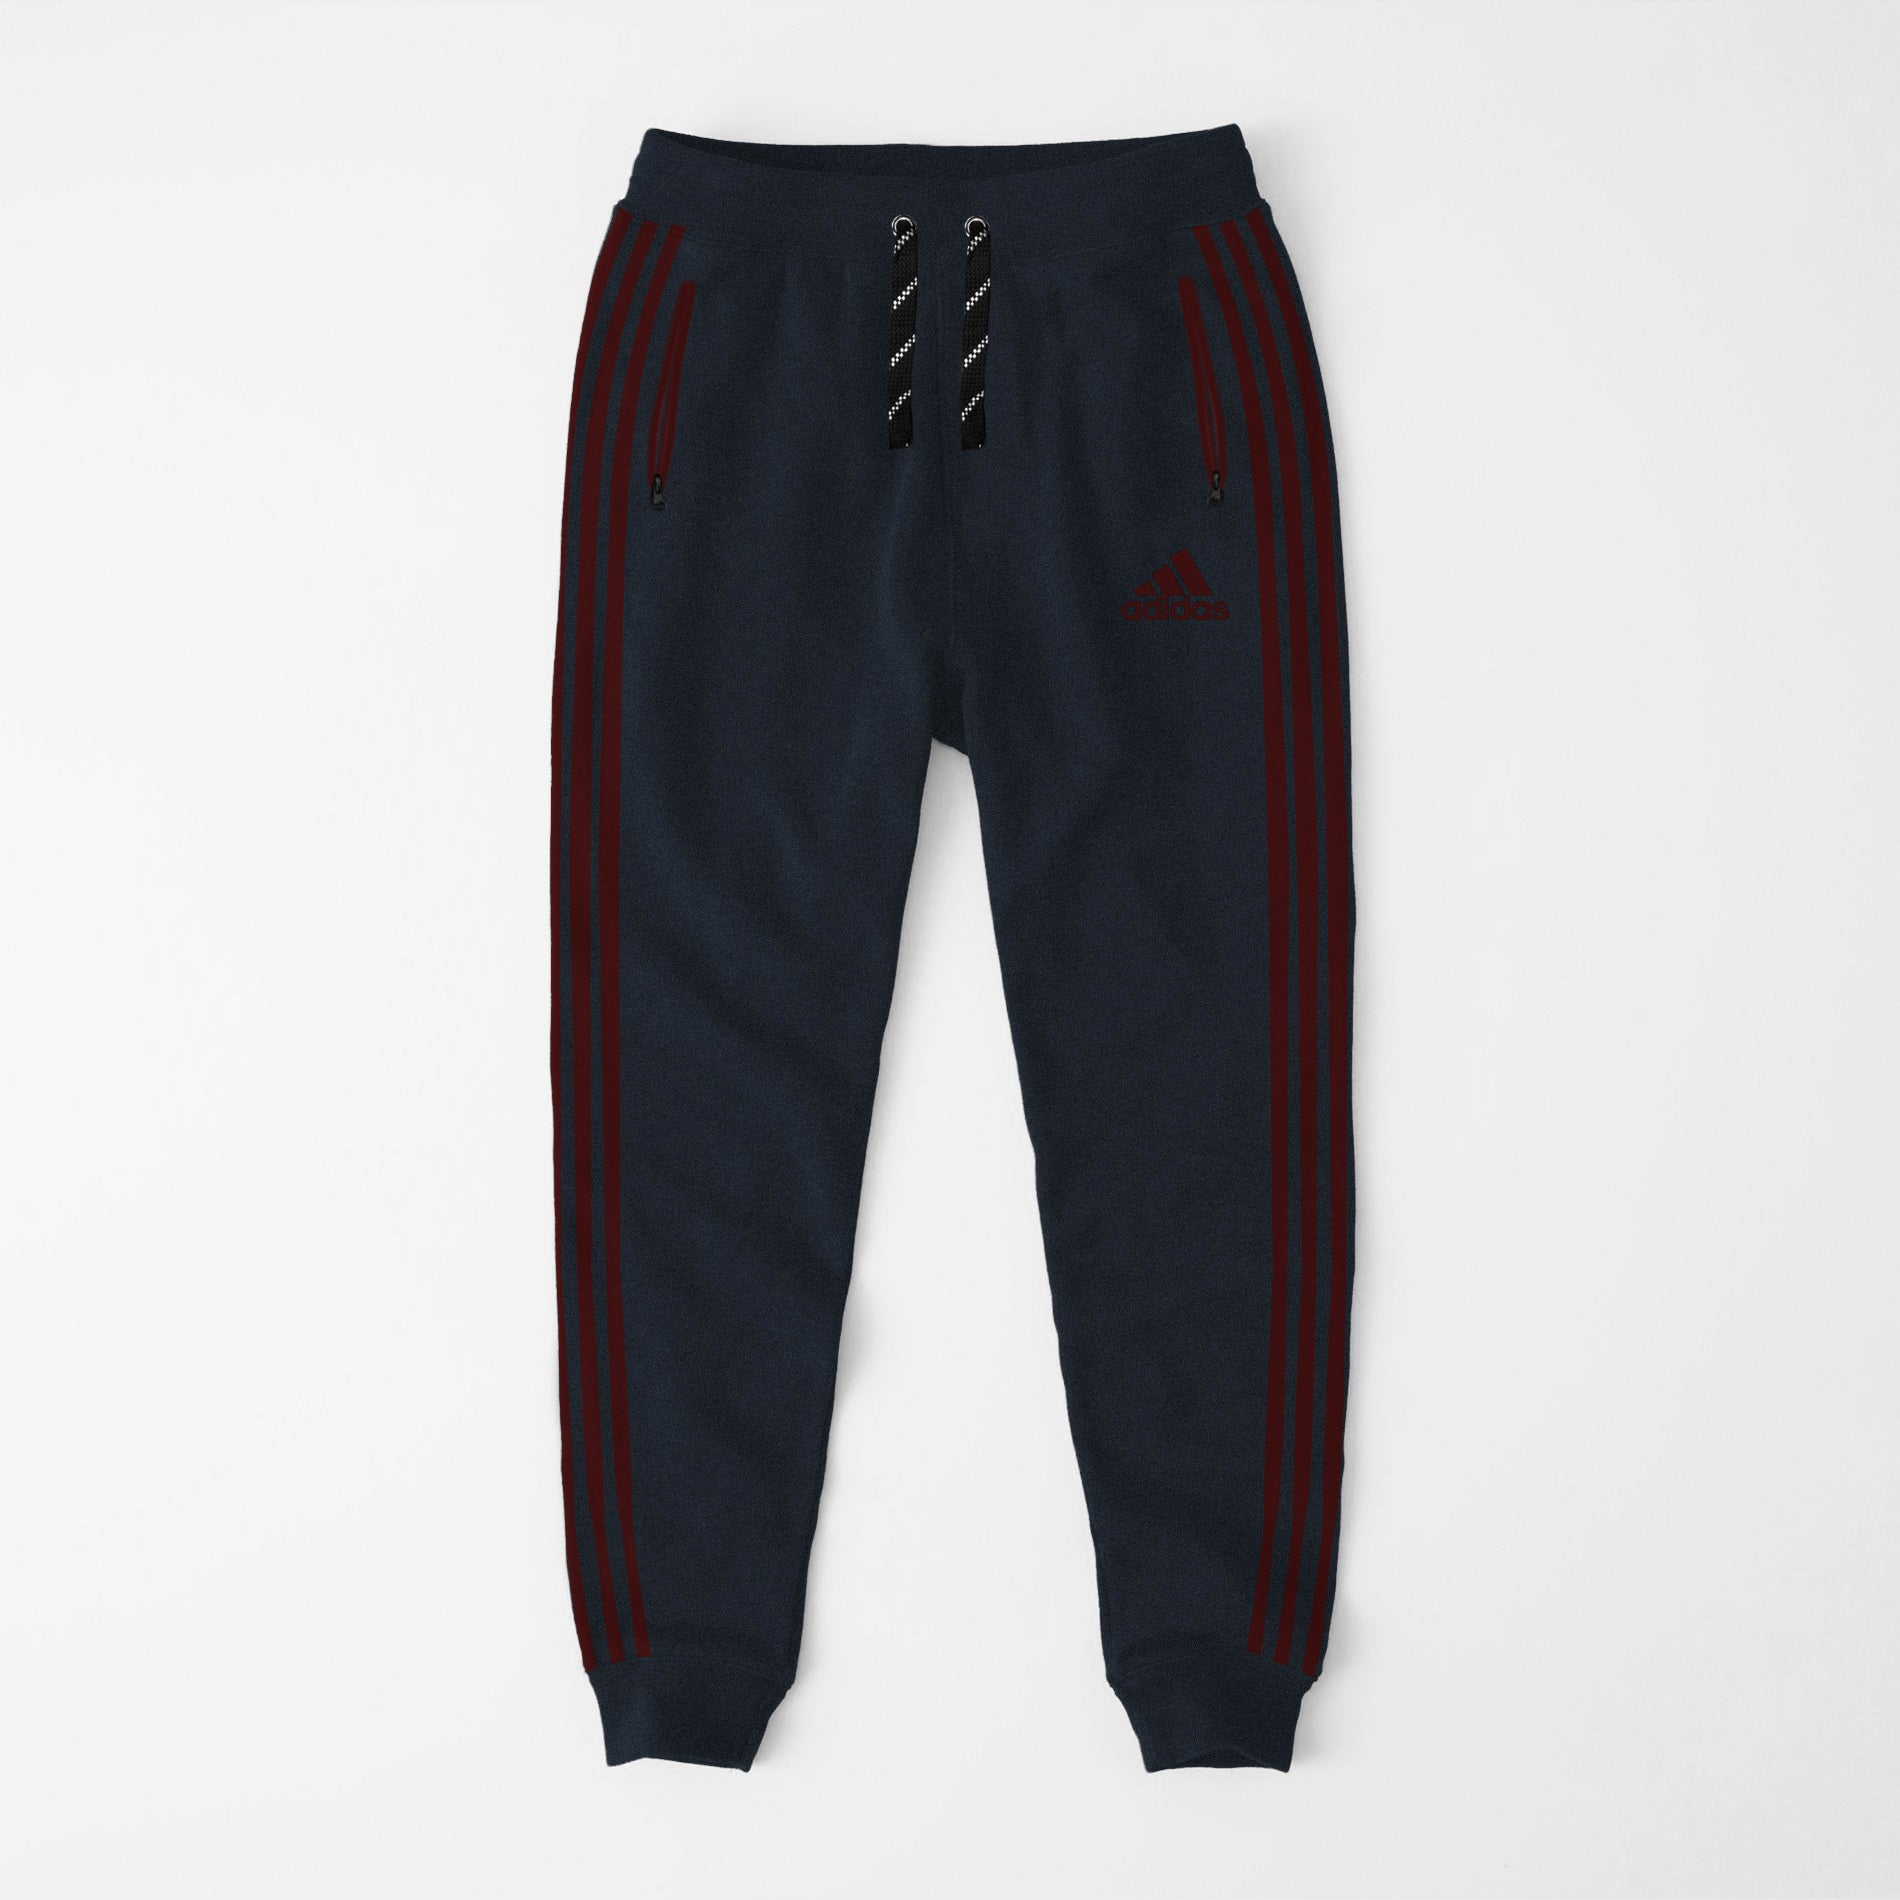 Adidas Single Jersey Slim Fit Jogger Trouser For Men-Dark Navy Melange With Burgundy Stripes-NA8259